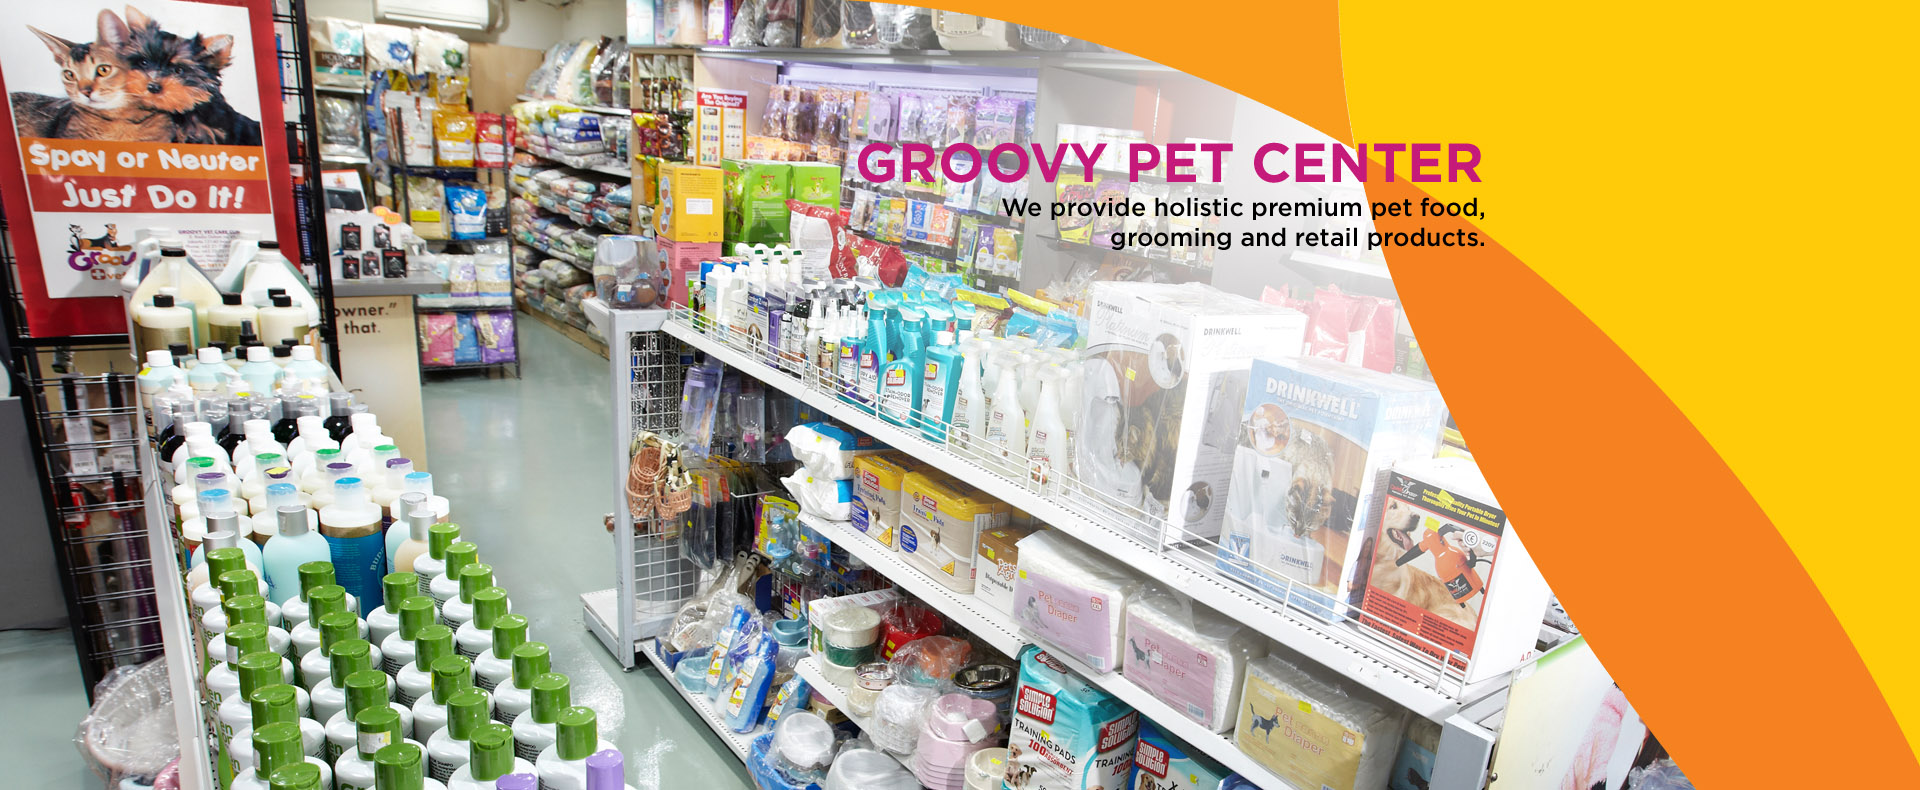 Groovy Pet Center